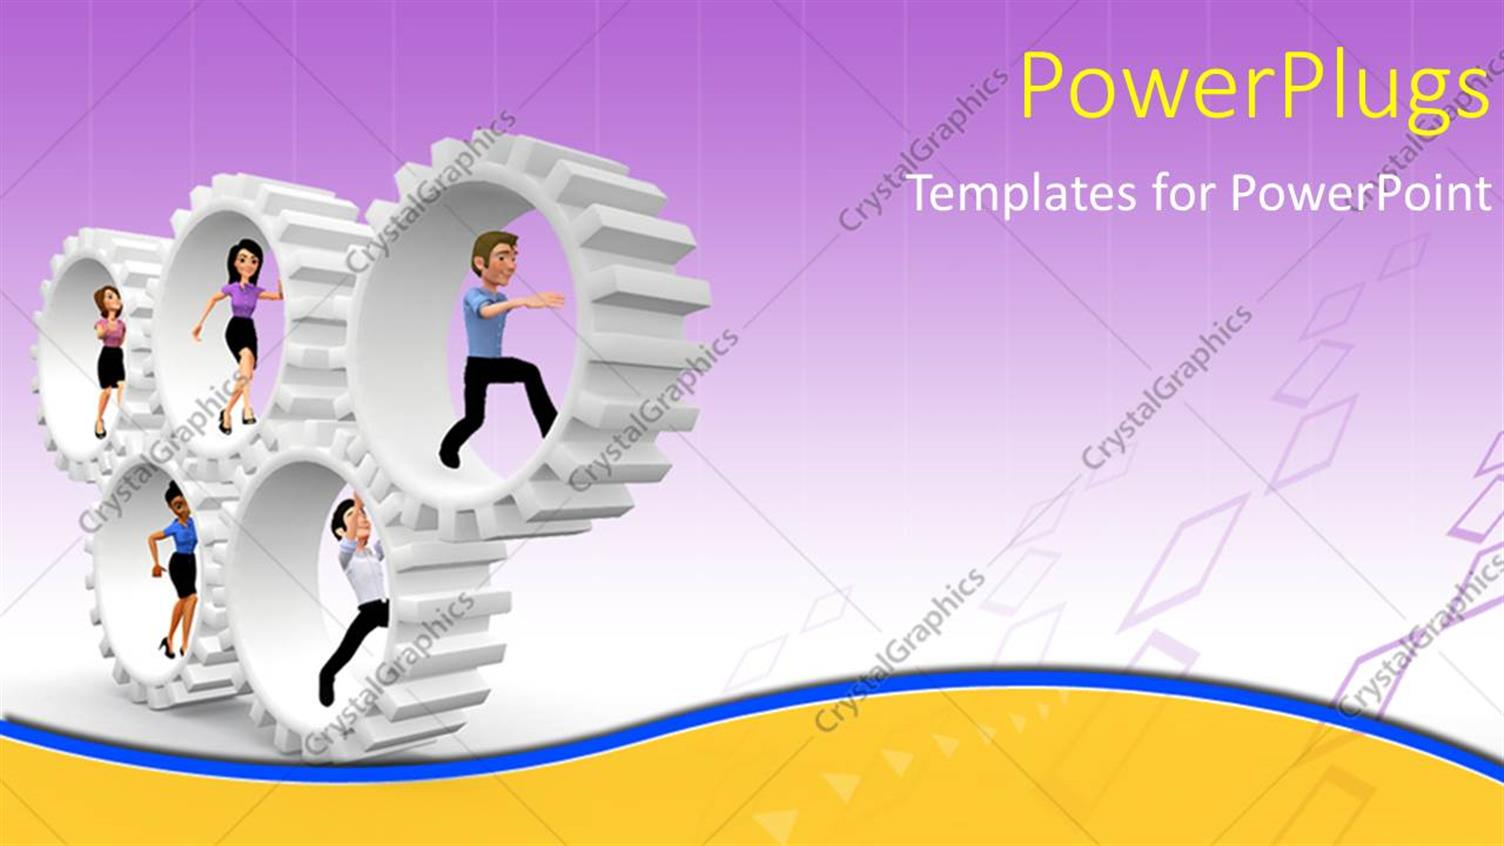 PowerPoint Template Displaying Five Human Cartoon Characters Running Inside White Gears